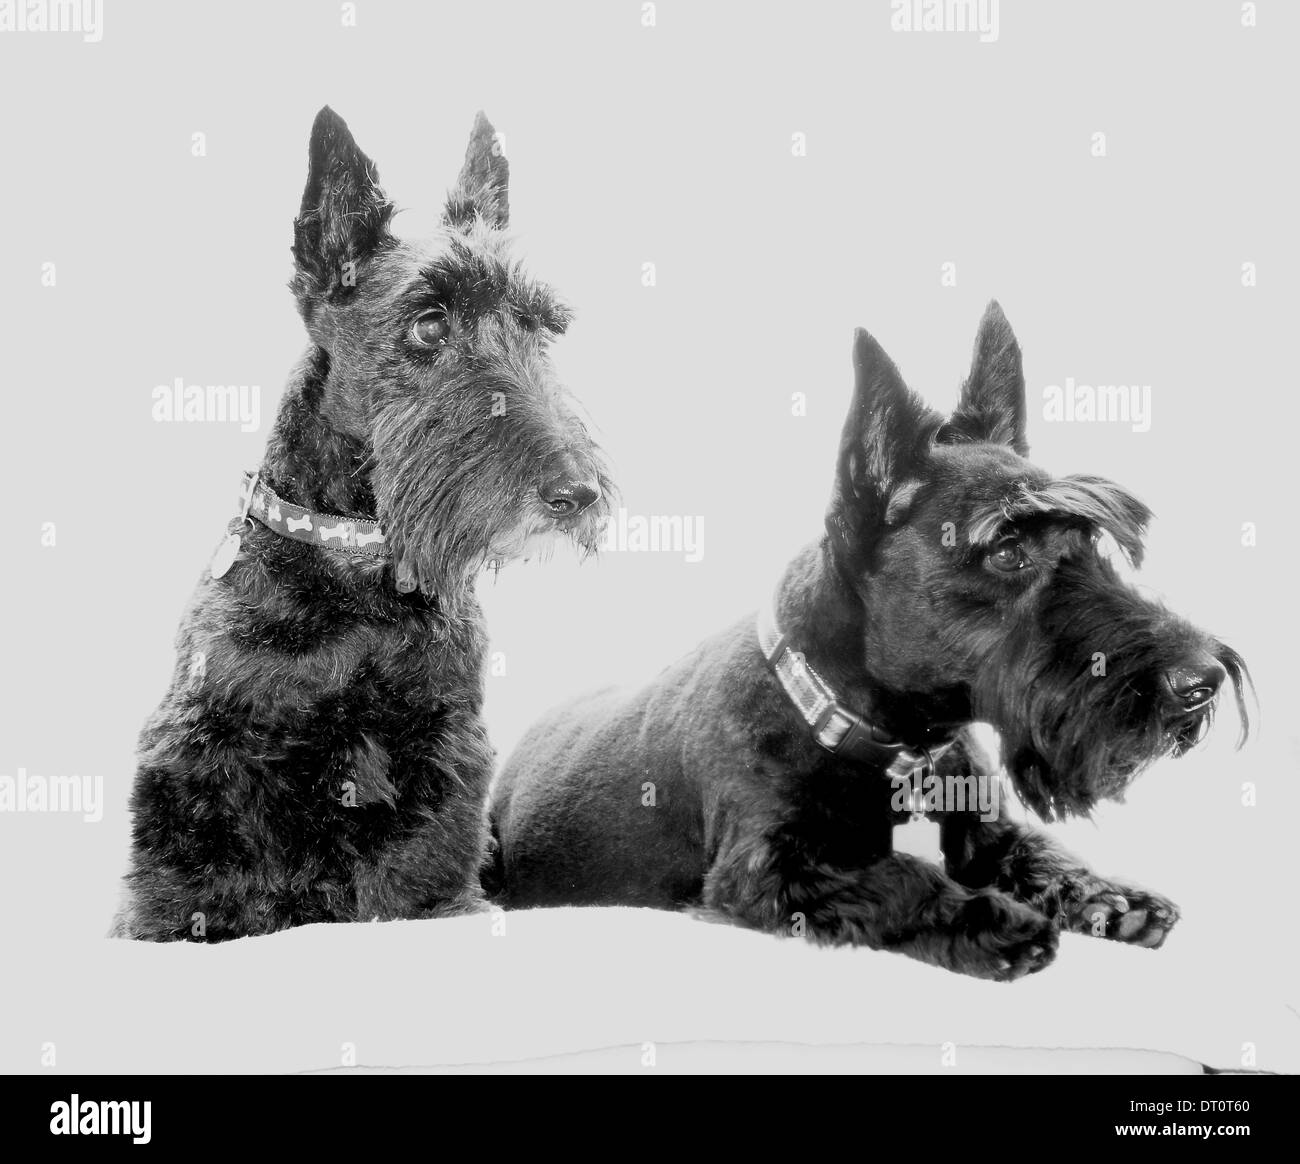 Two Scottish Terriers - Stock Image